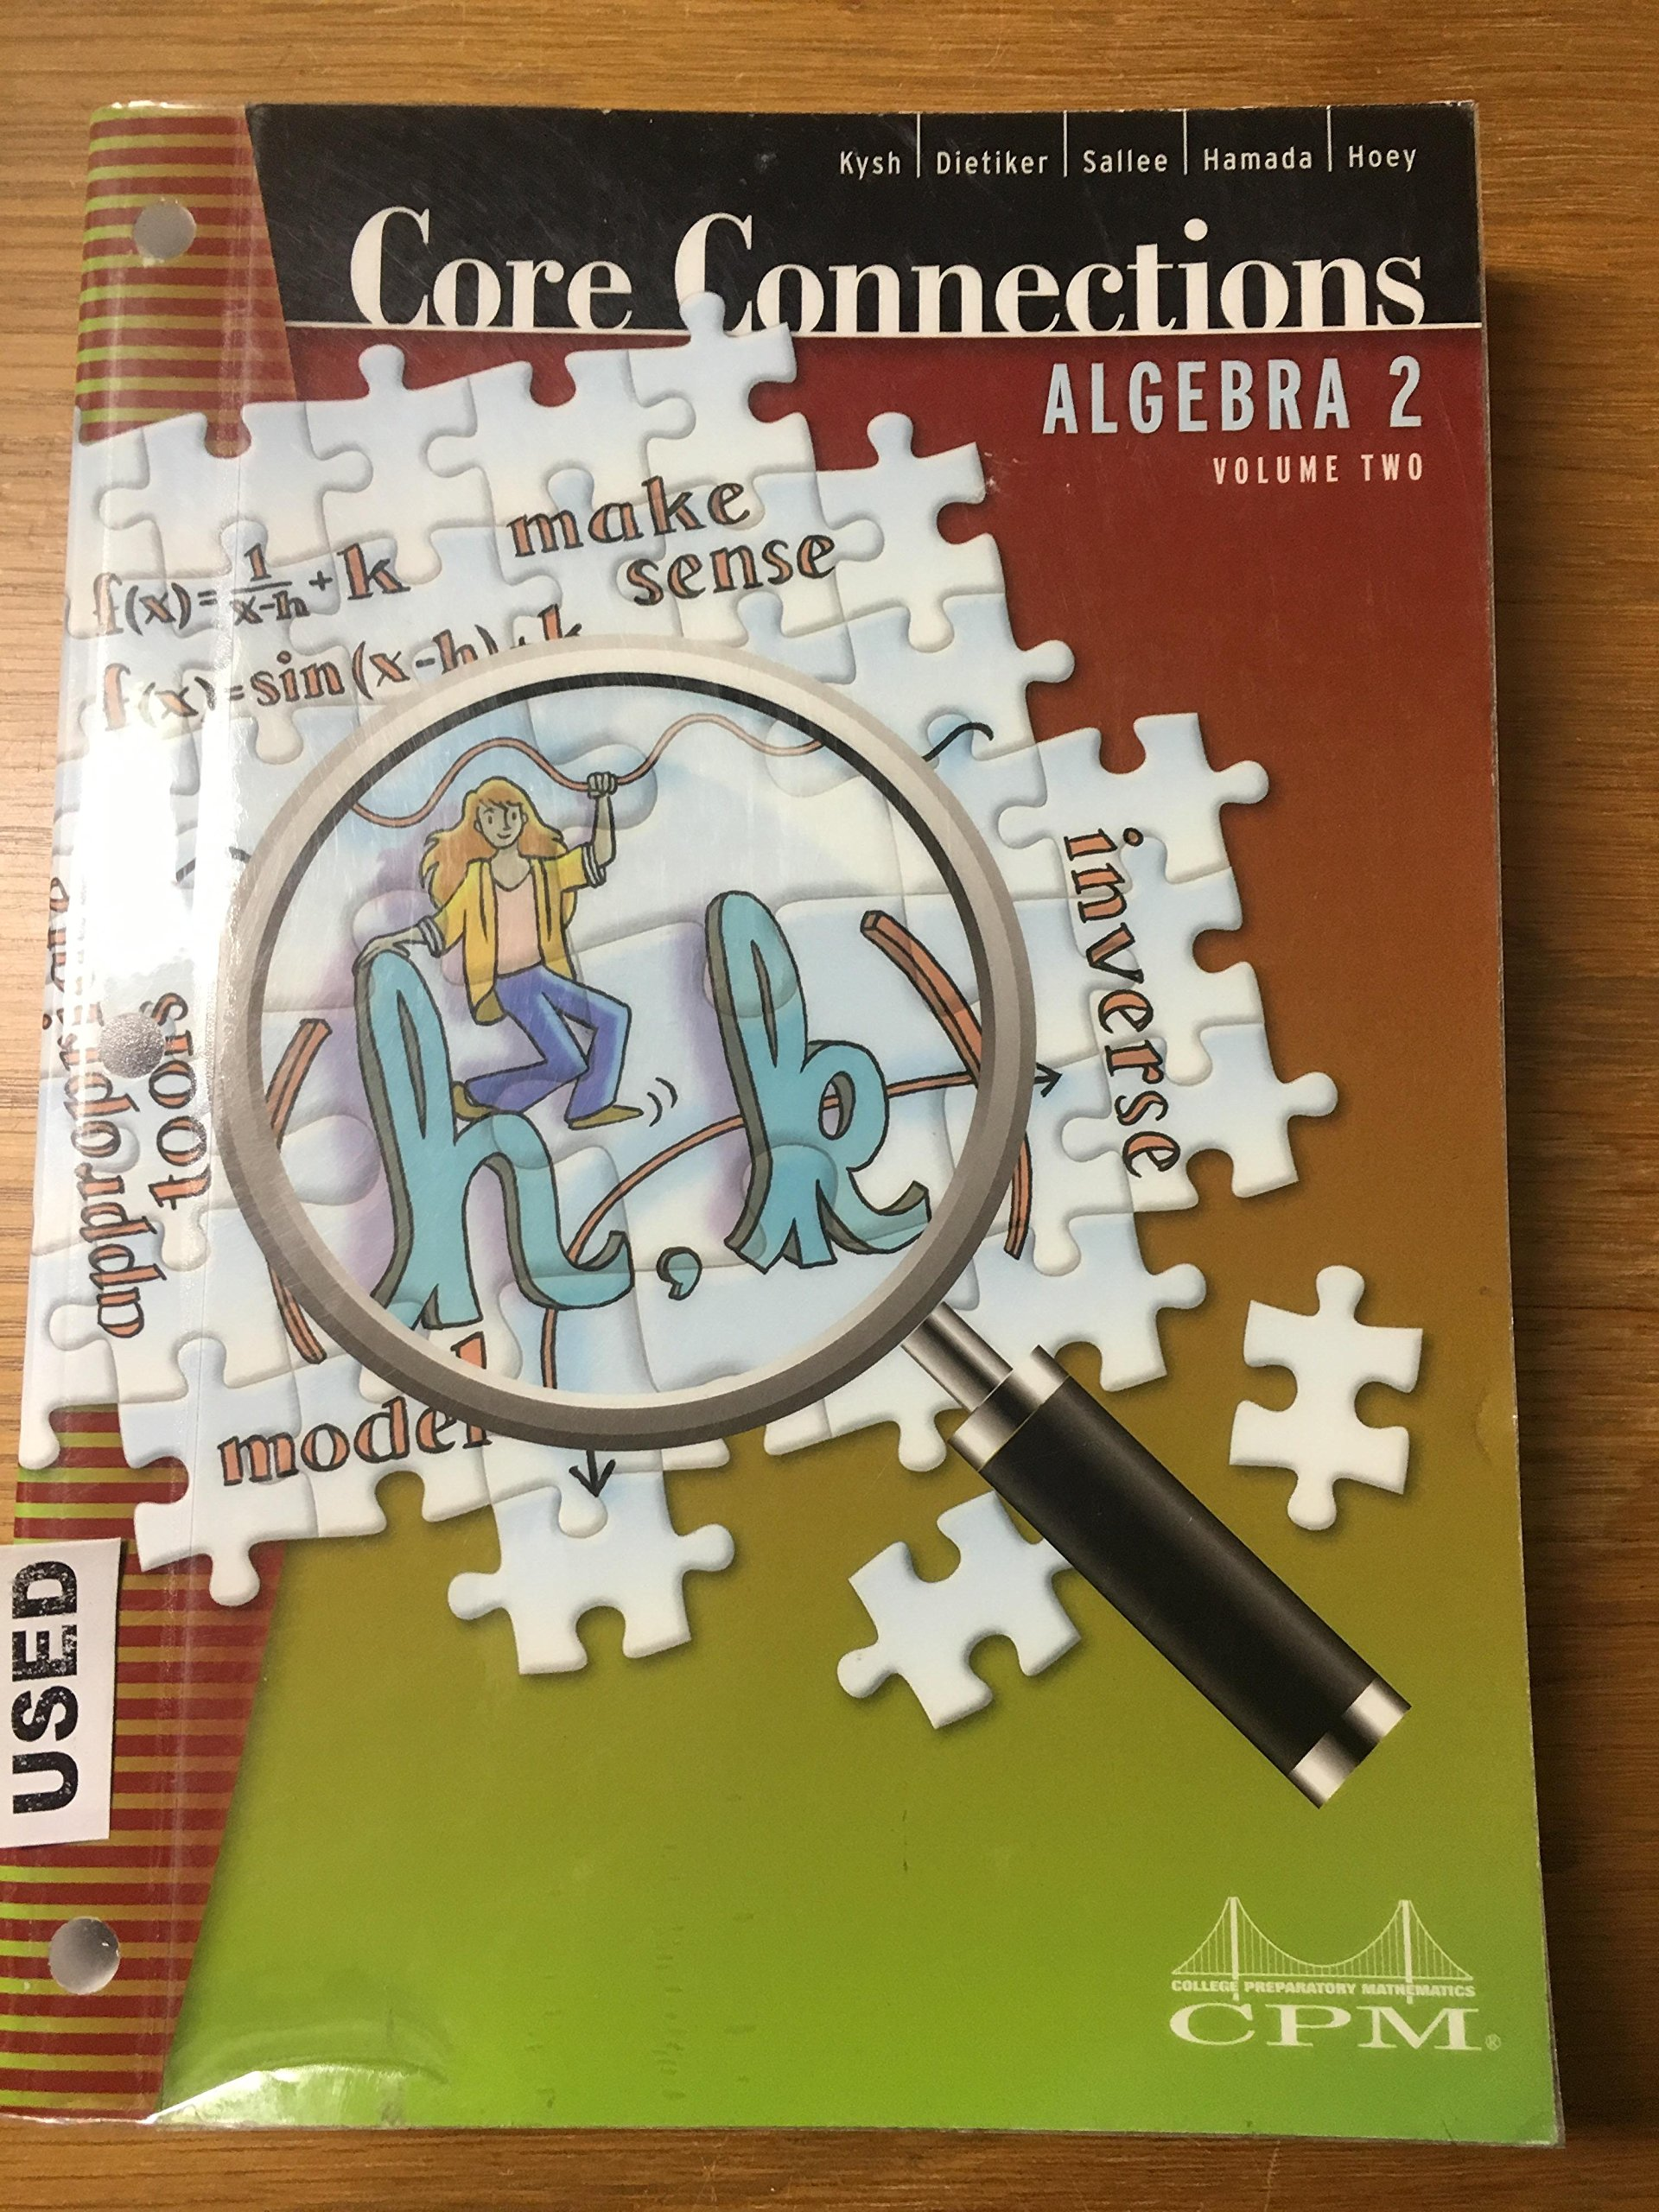 Download Core Connections Algebra 2 Volume 2 2nd Ed. Version 4.0 PDF